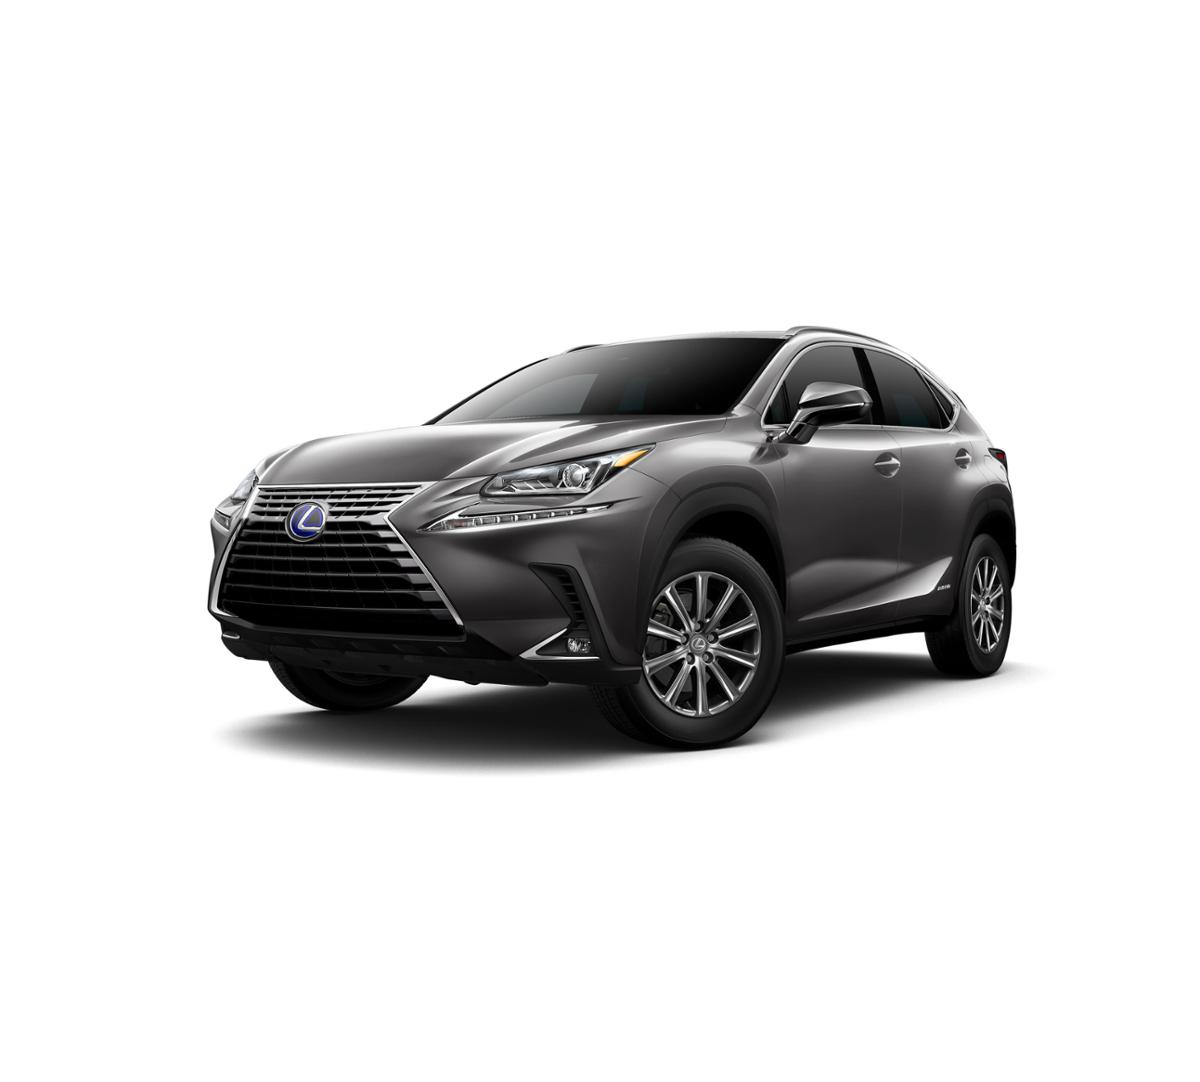 2019 Lexus NX 300h Vehicle Photo in Santa Monica, CA 90404